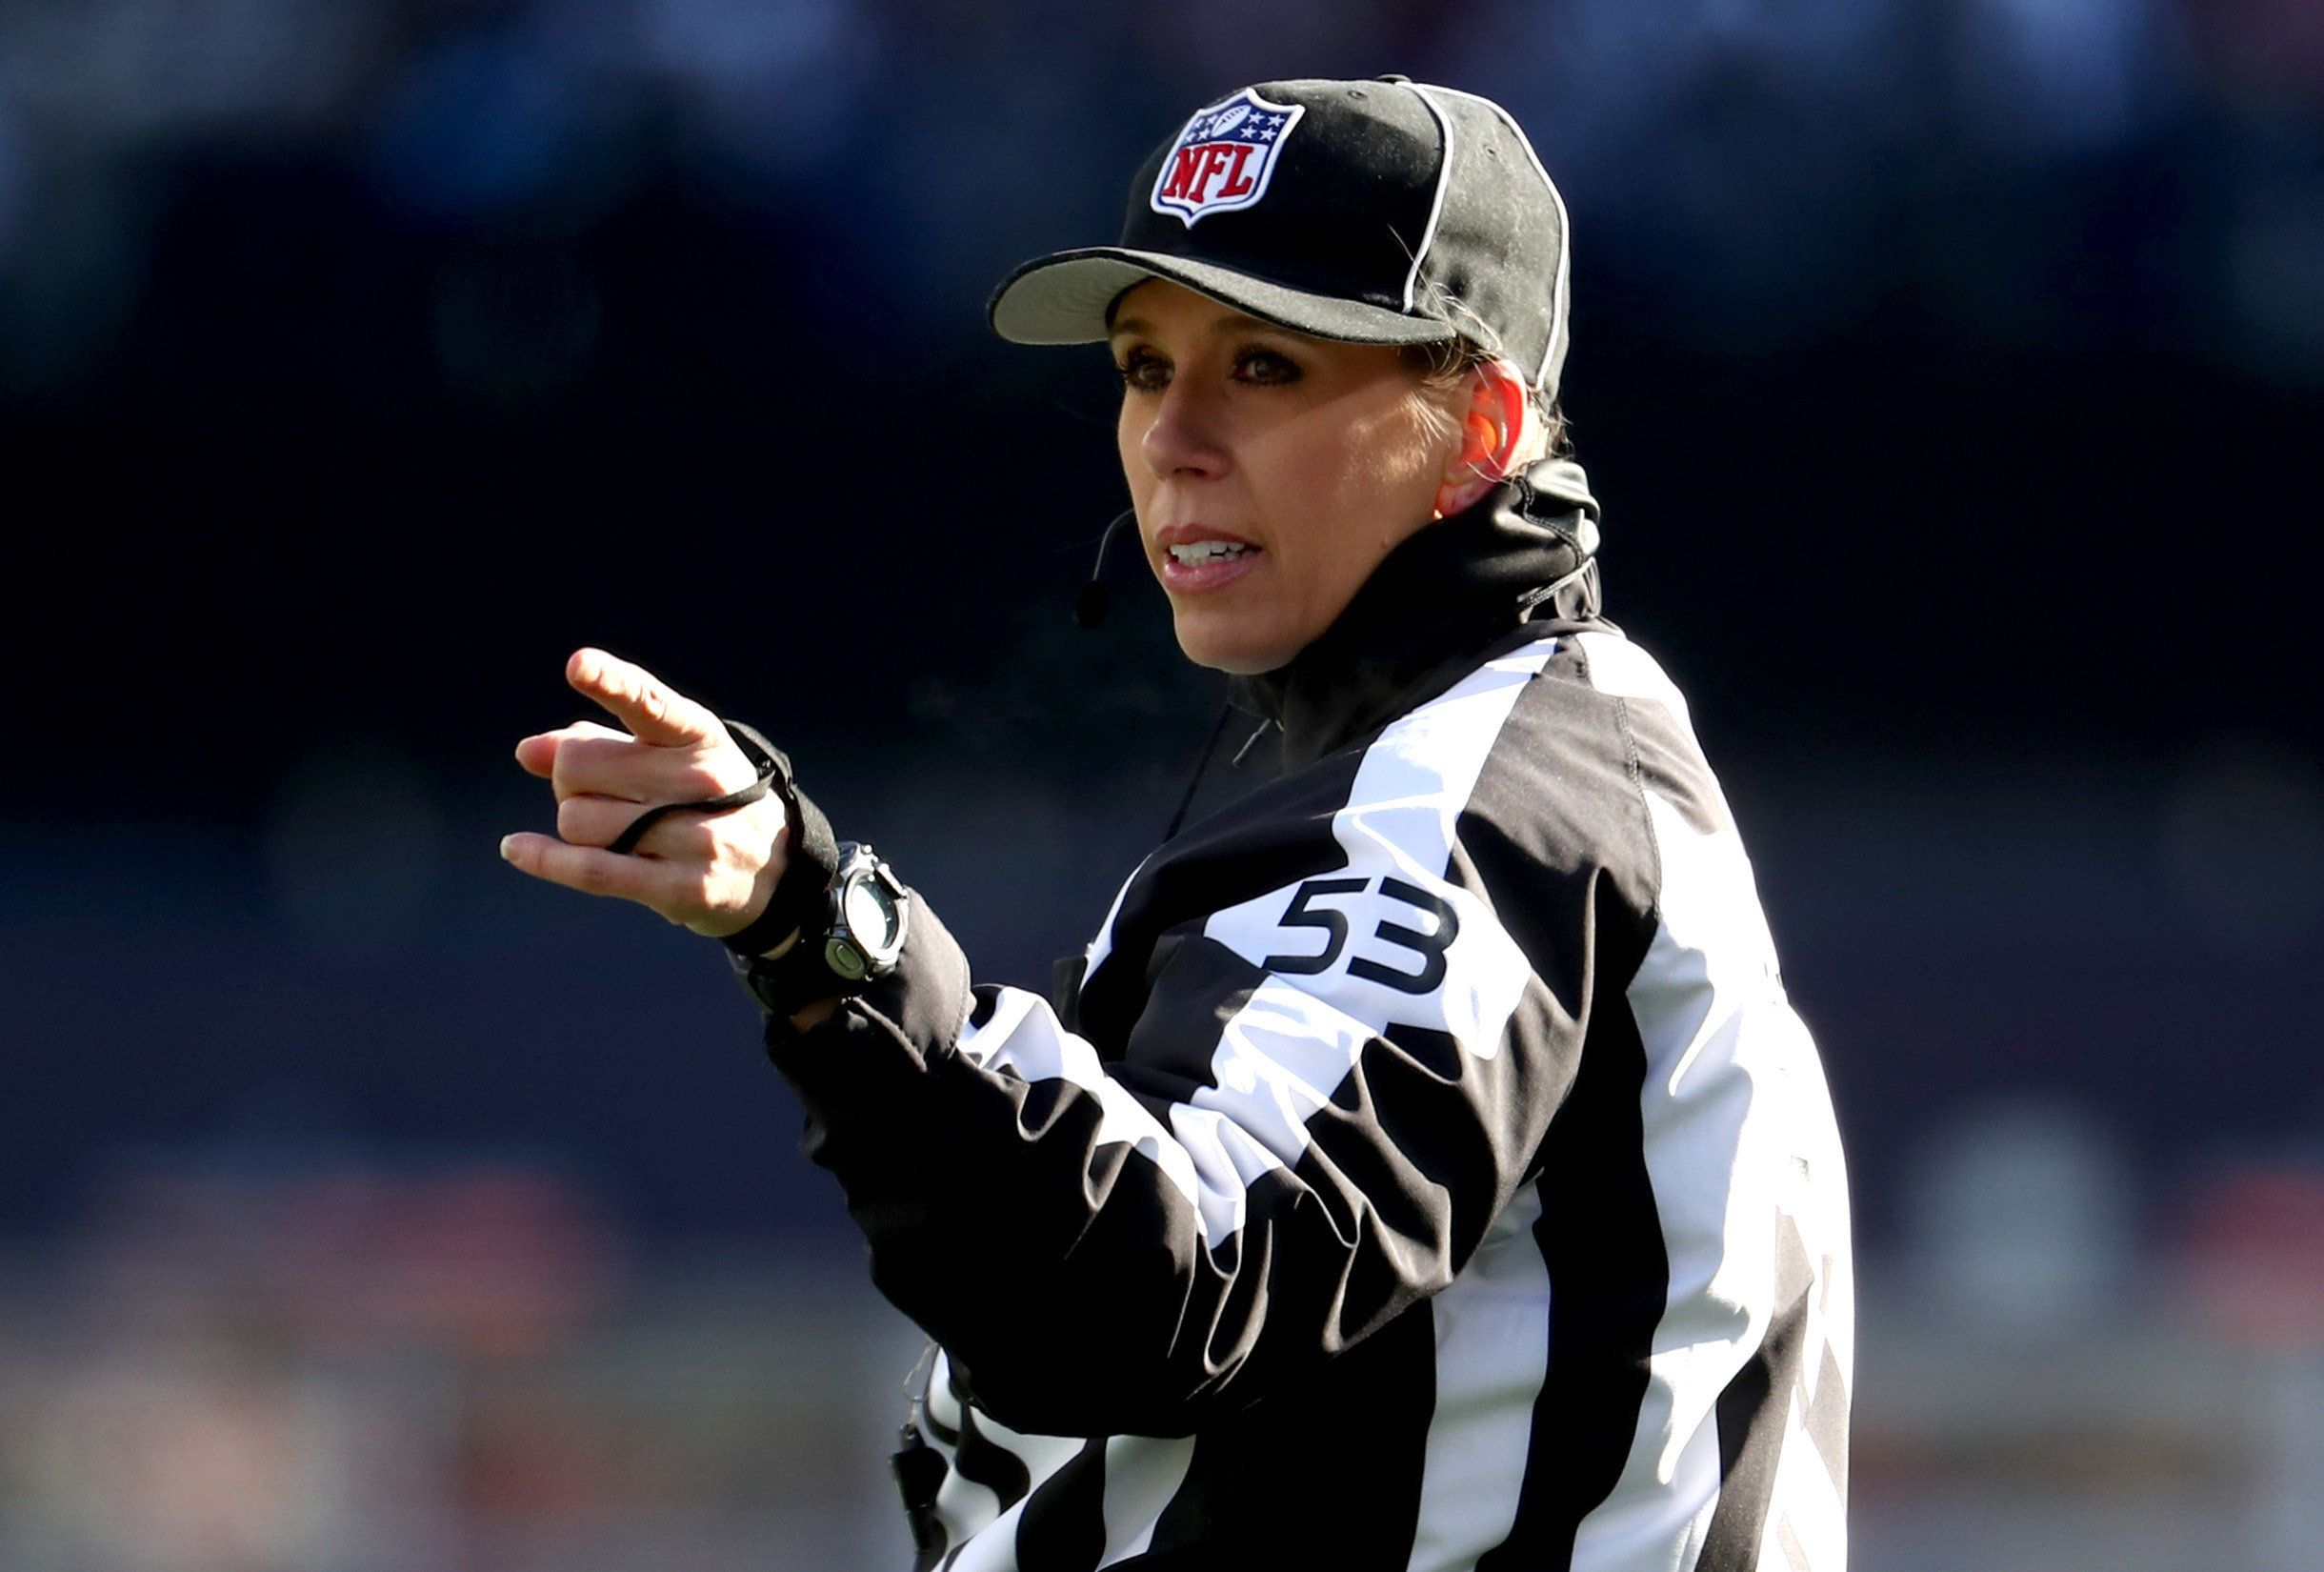 Sarah Thomas Becomes The First Woman To Officiate NFL Playoff